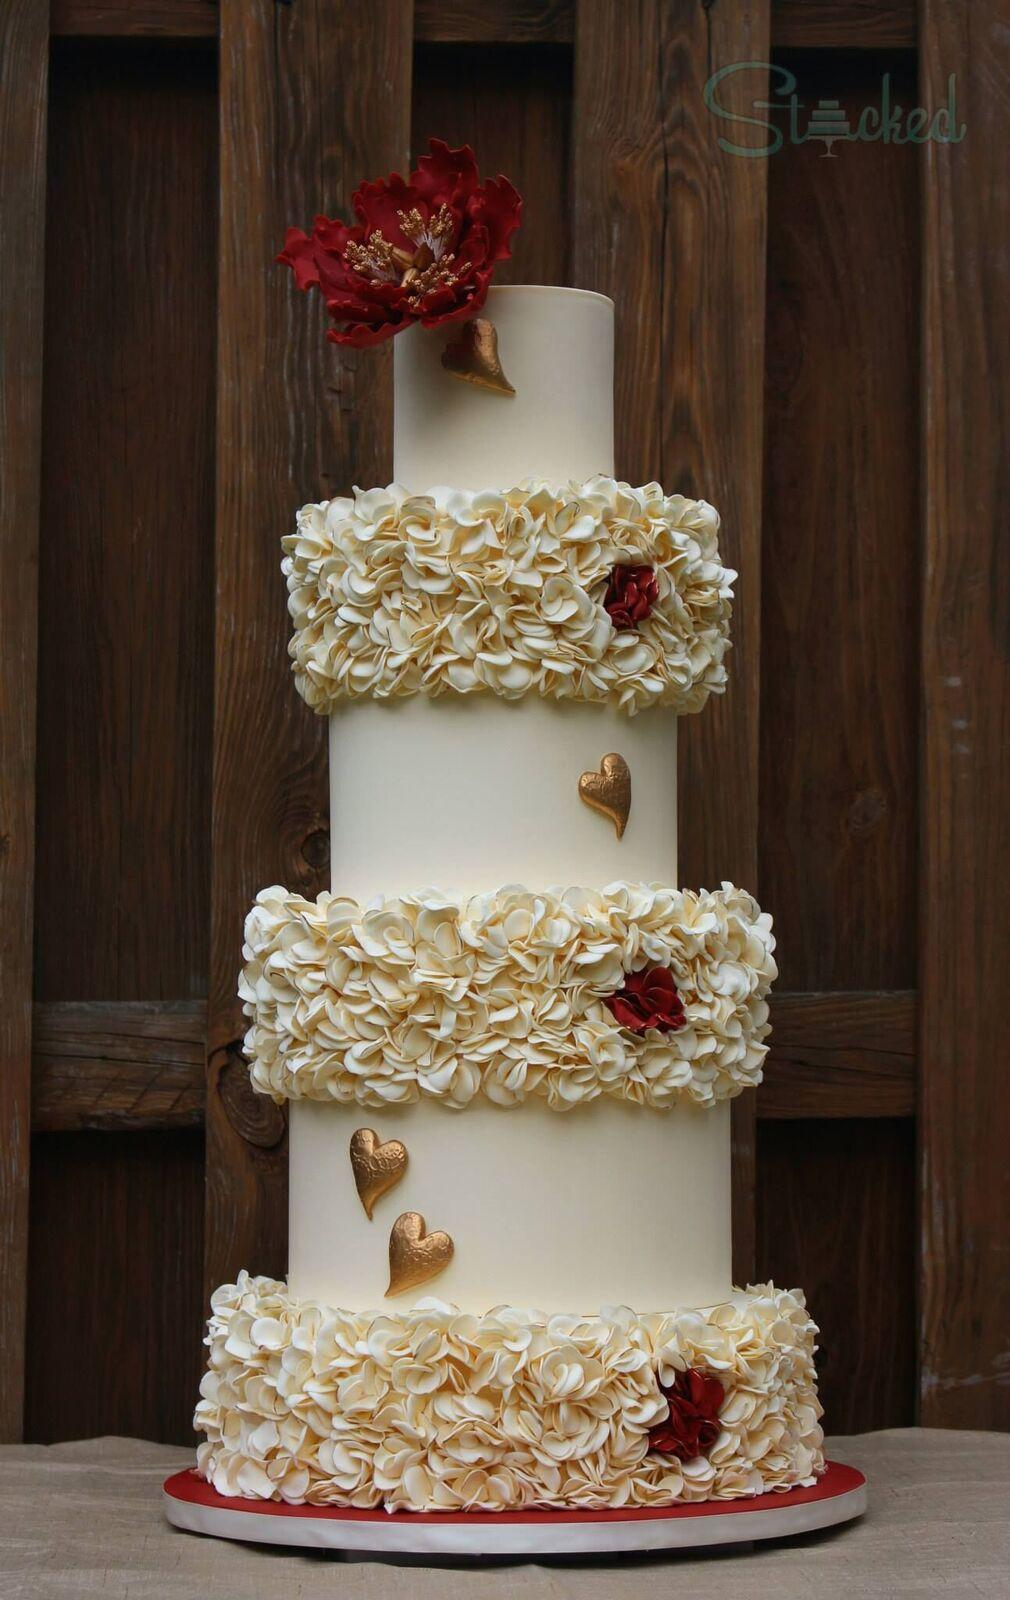 Ivory fondant ruffle wedding cake with hearts